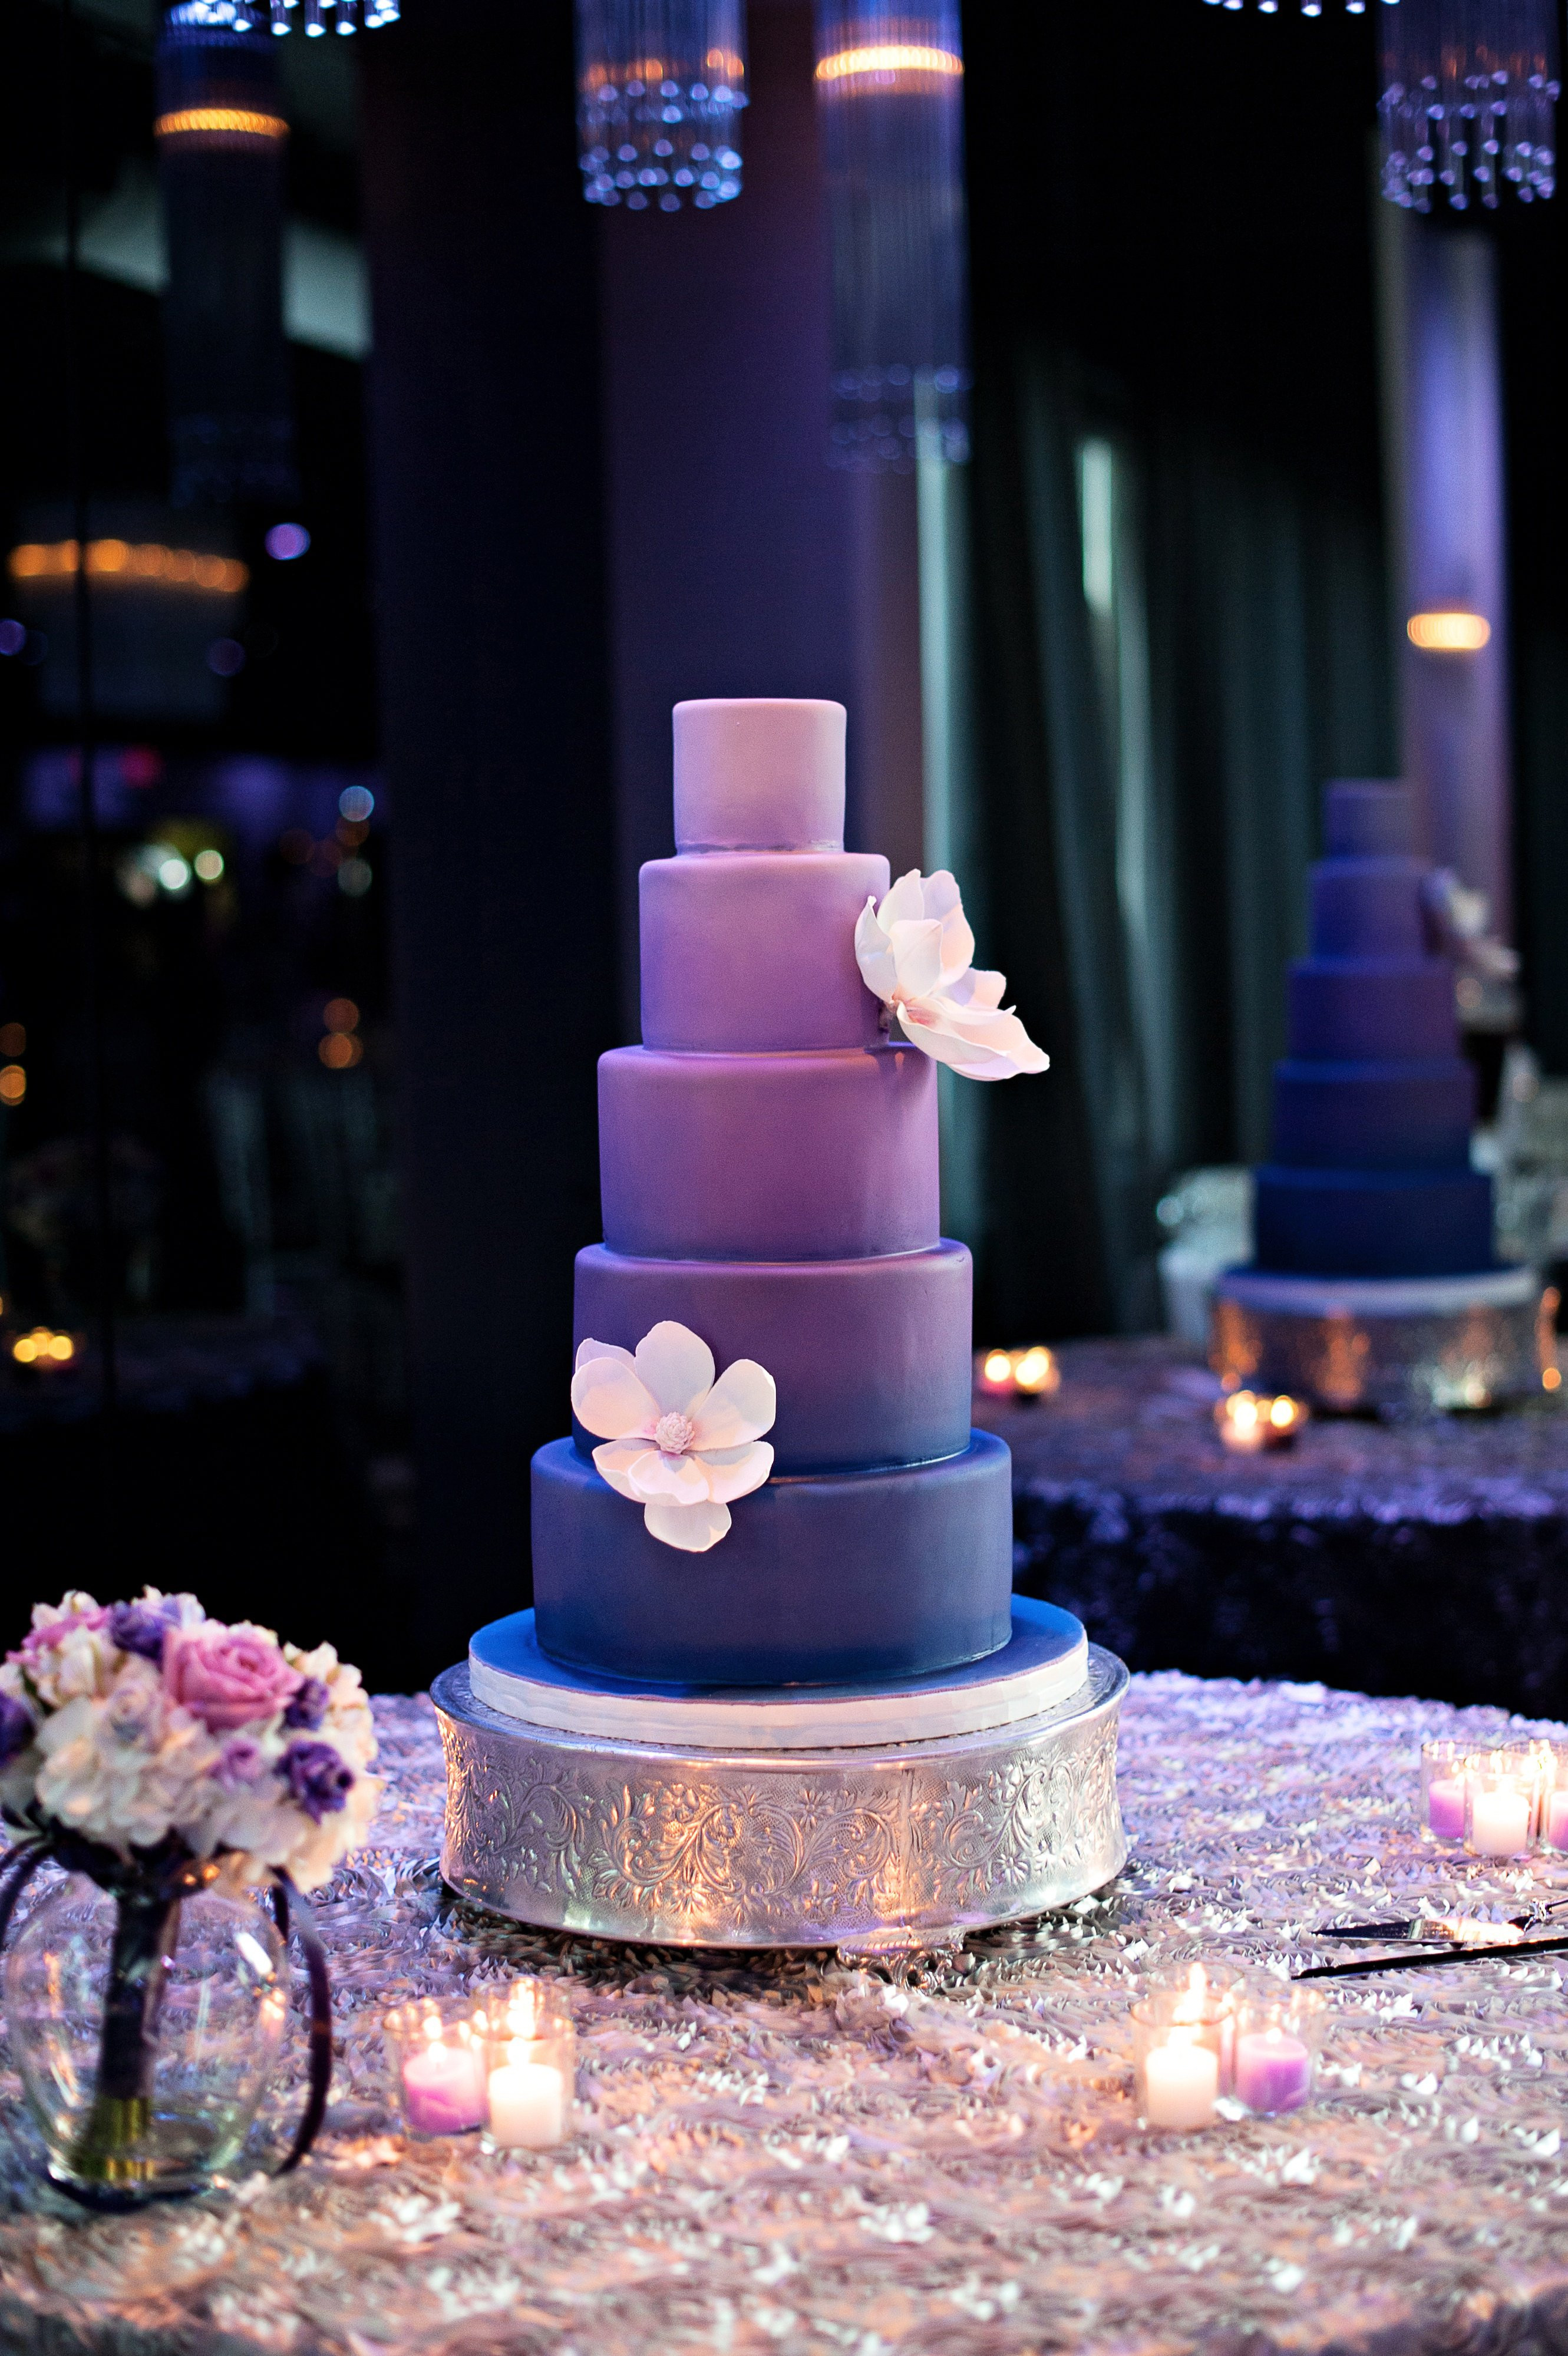 Purple Wedding Cakes Pictures  purple fondant wedding cakes bination of White and